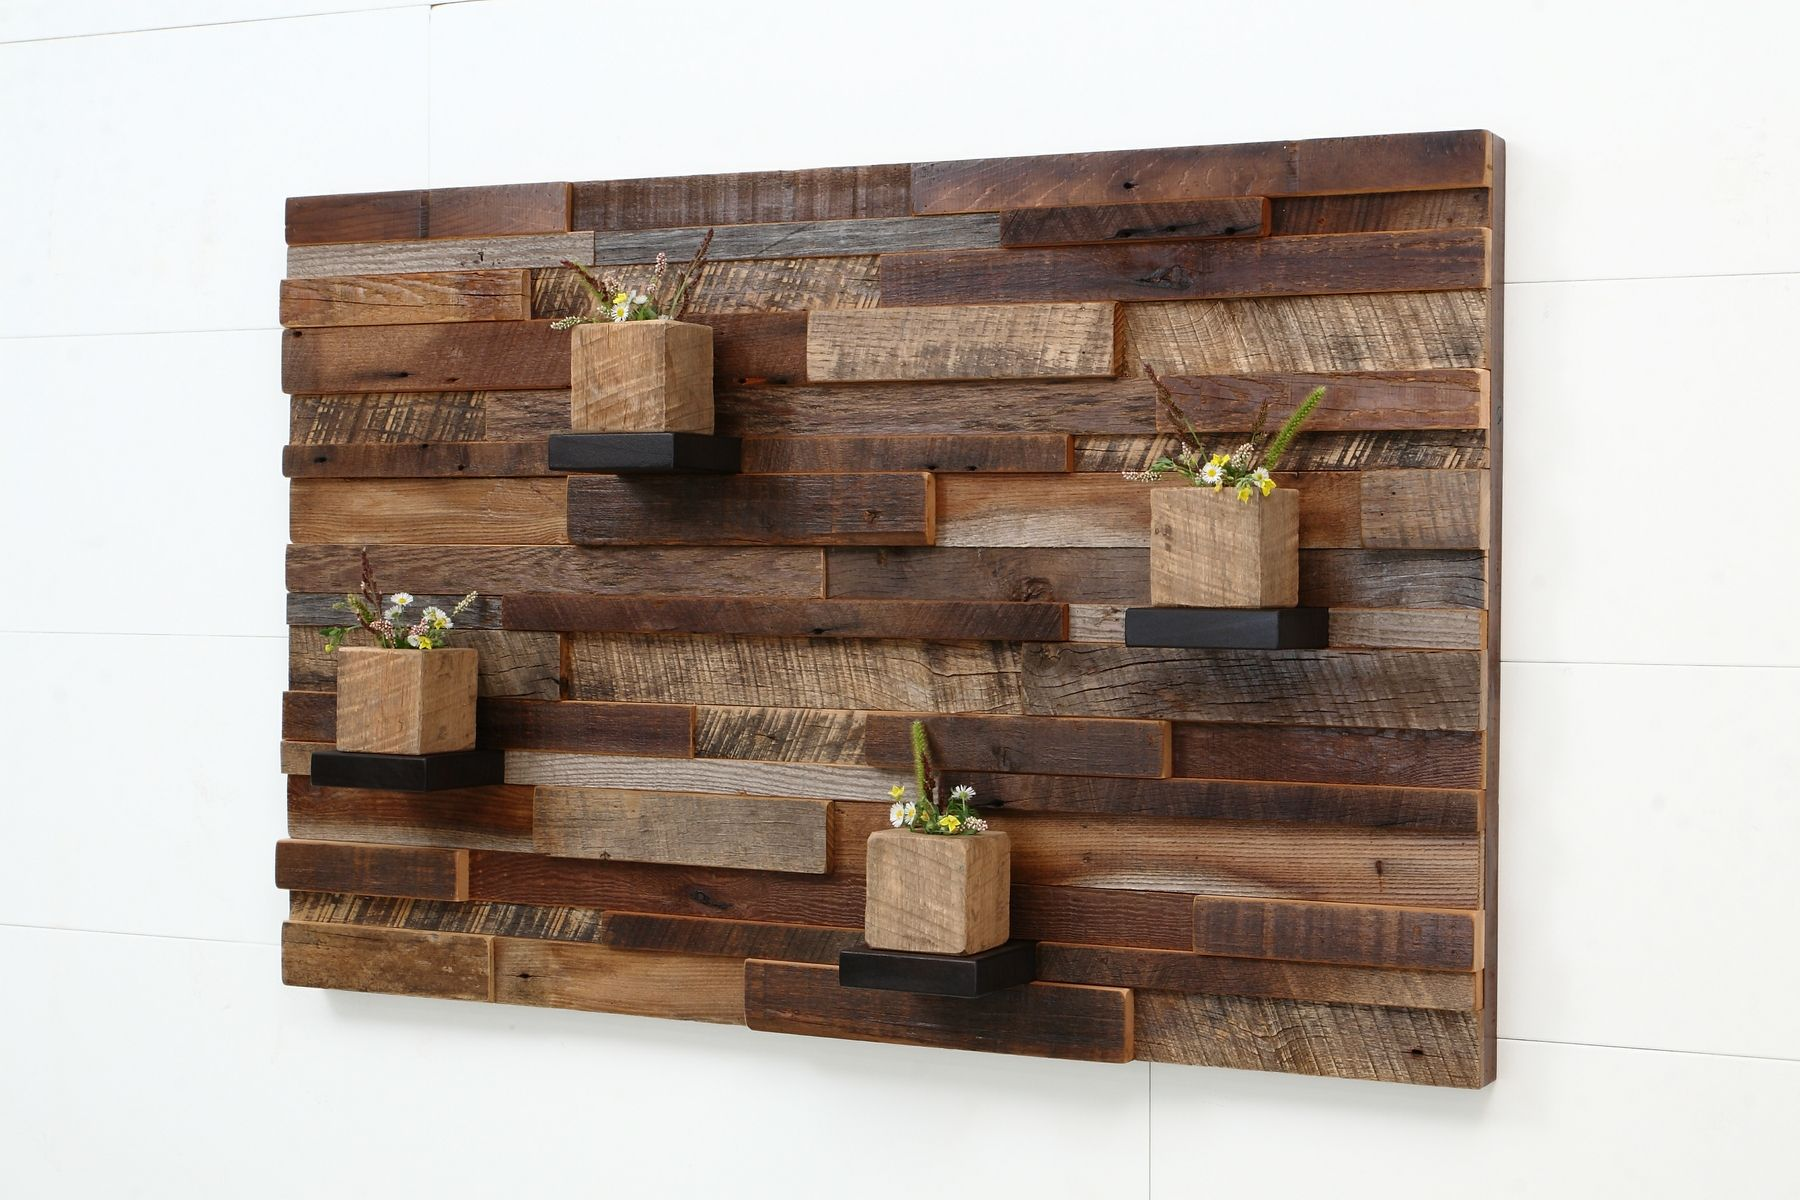 Hand crafted reclaimed wood wall art made of old barnwood Reclaimed woods